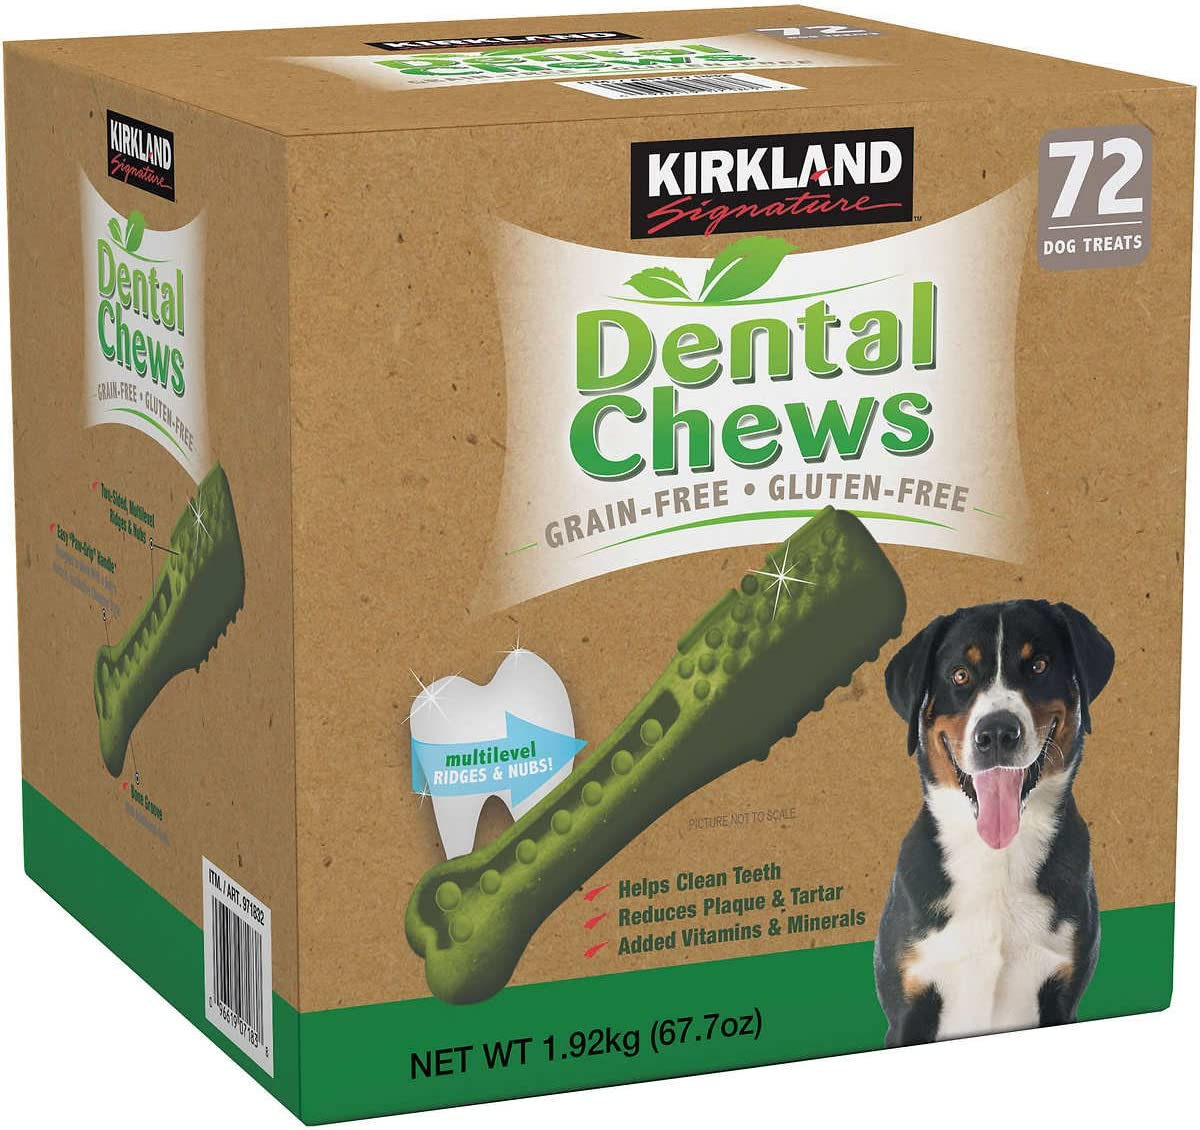 Kirkland Signature Doggy Dental Chews Grain-Free, Gluten-Free – 72 Treats